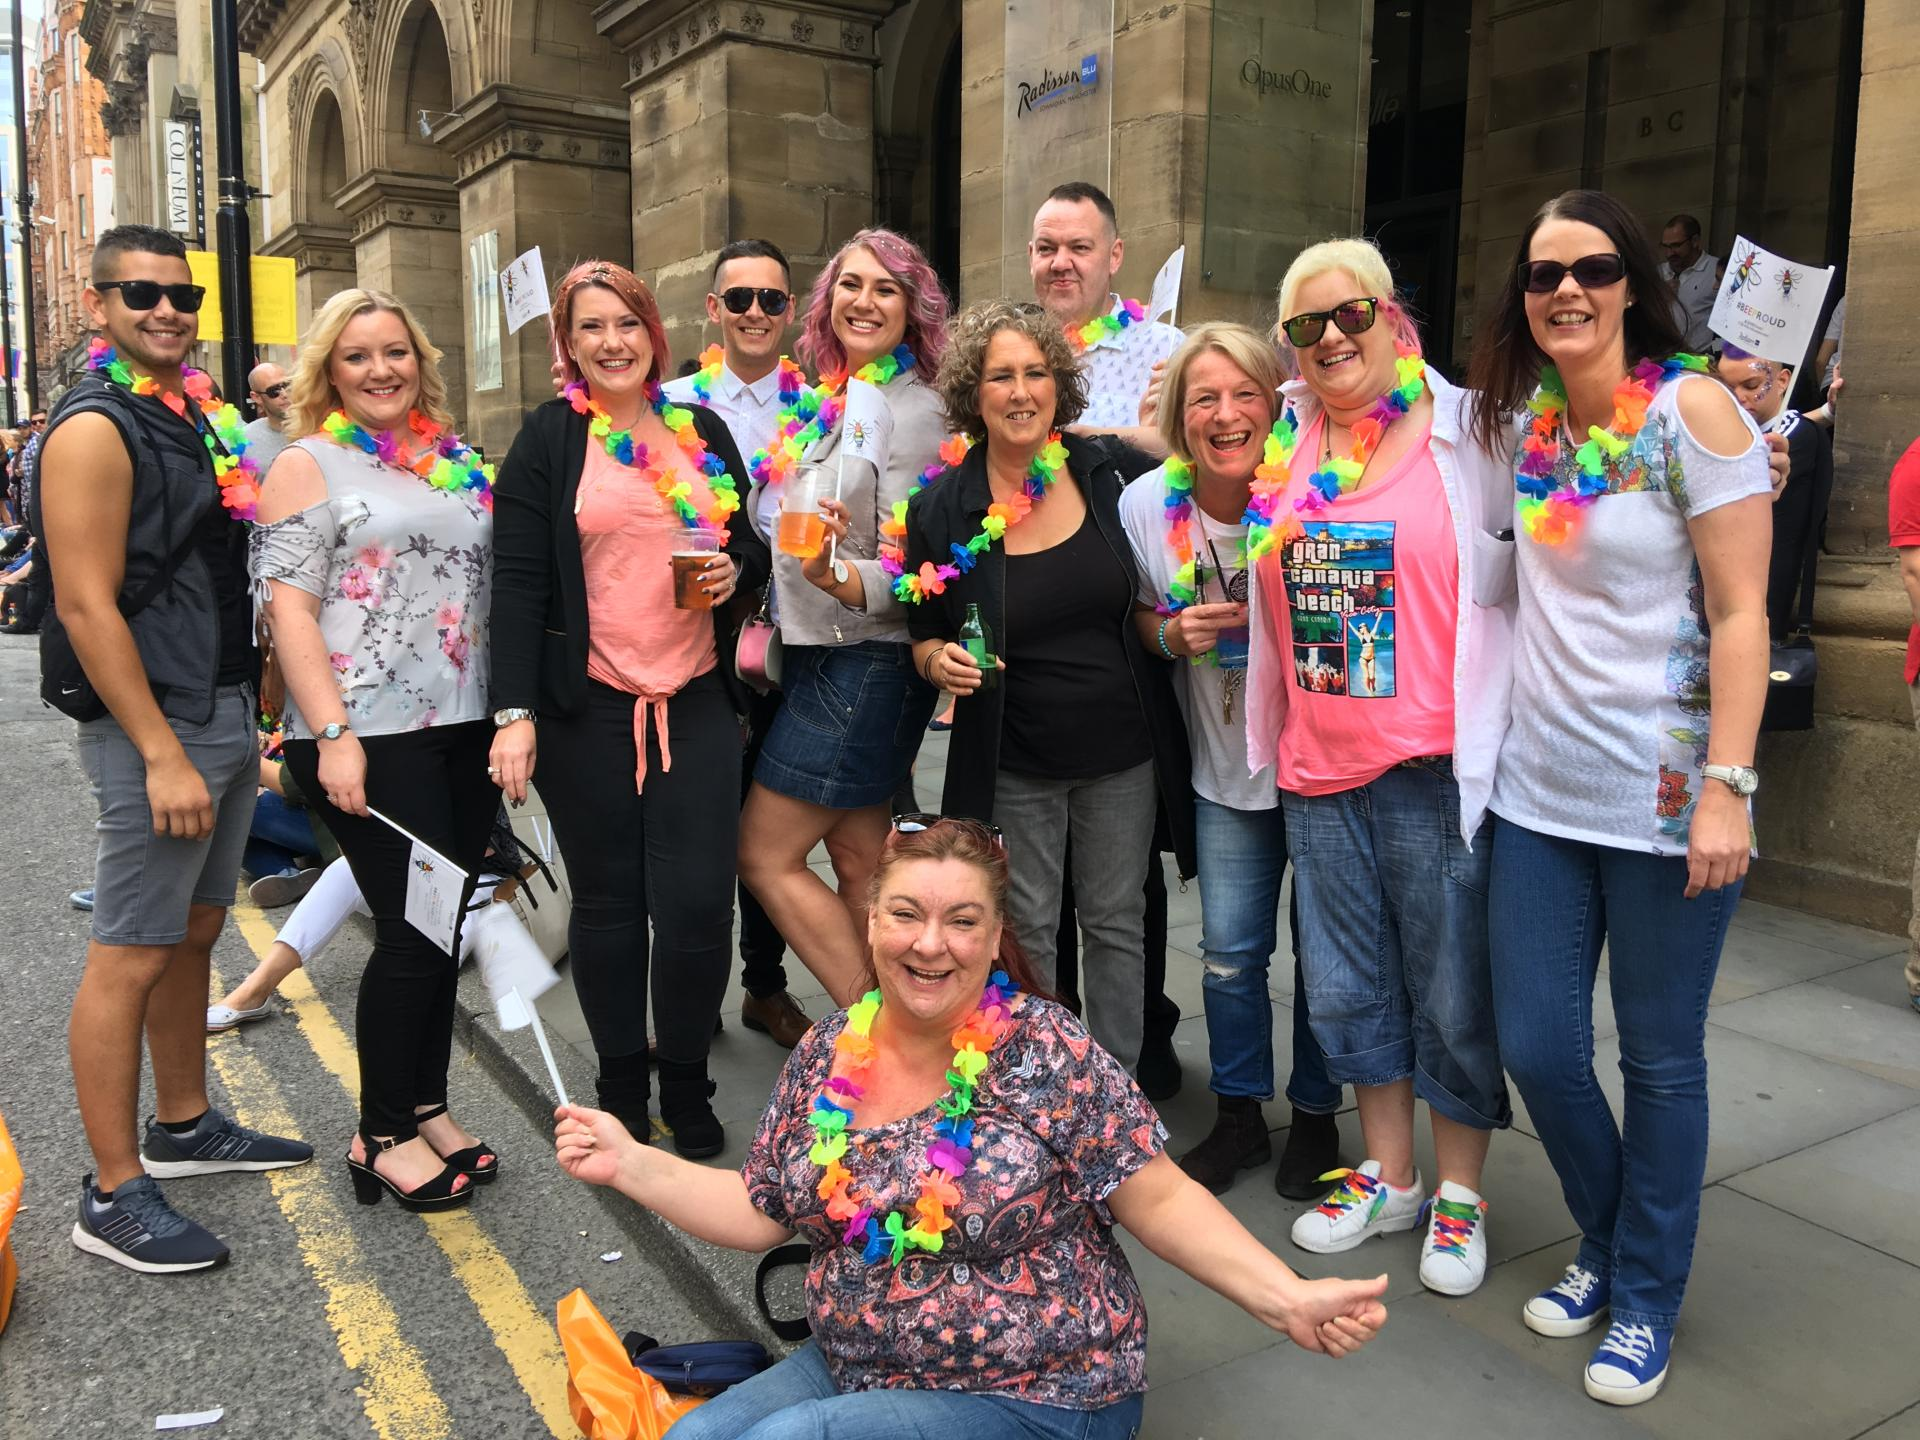 Raving with Rennie - Manchester Gay Pride 2017